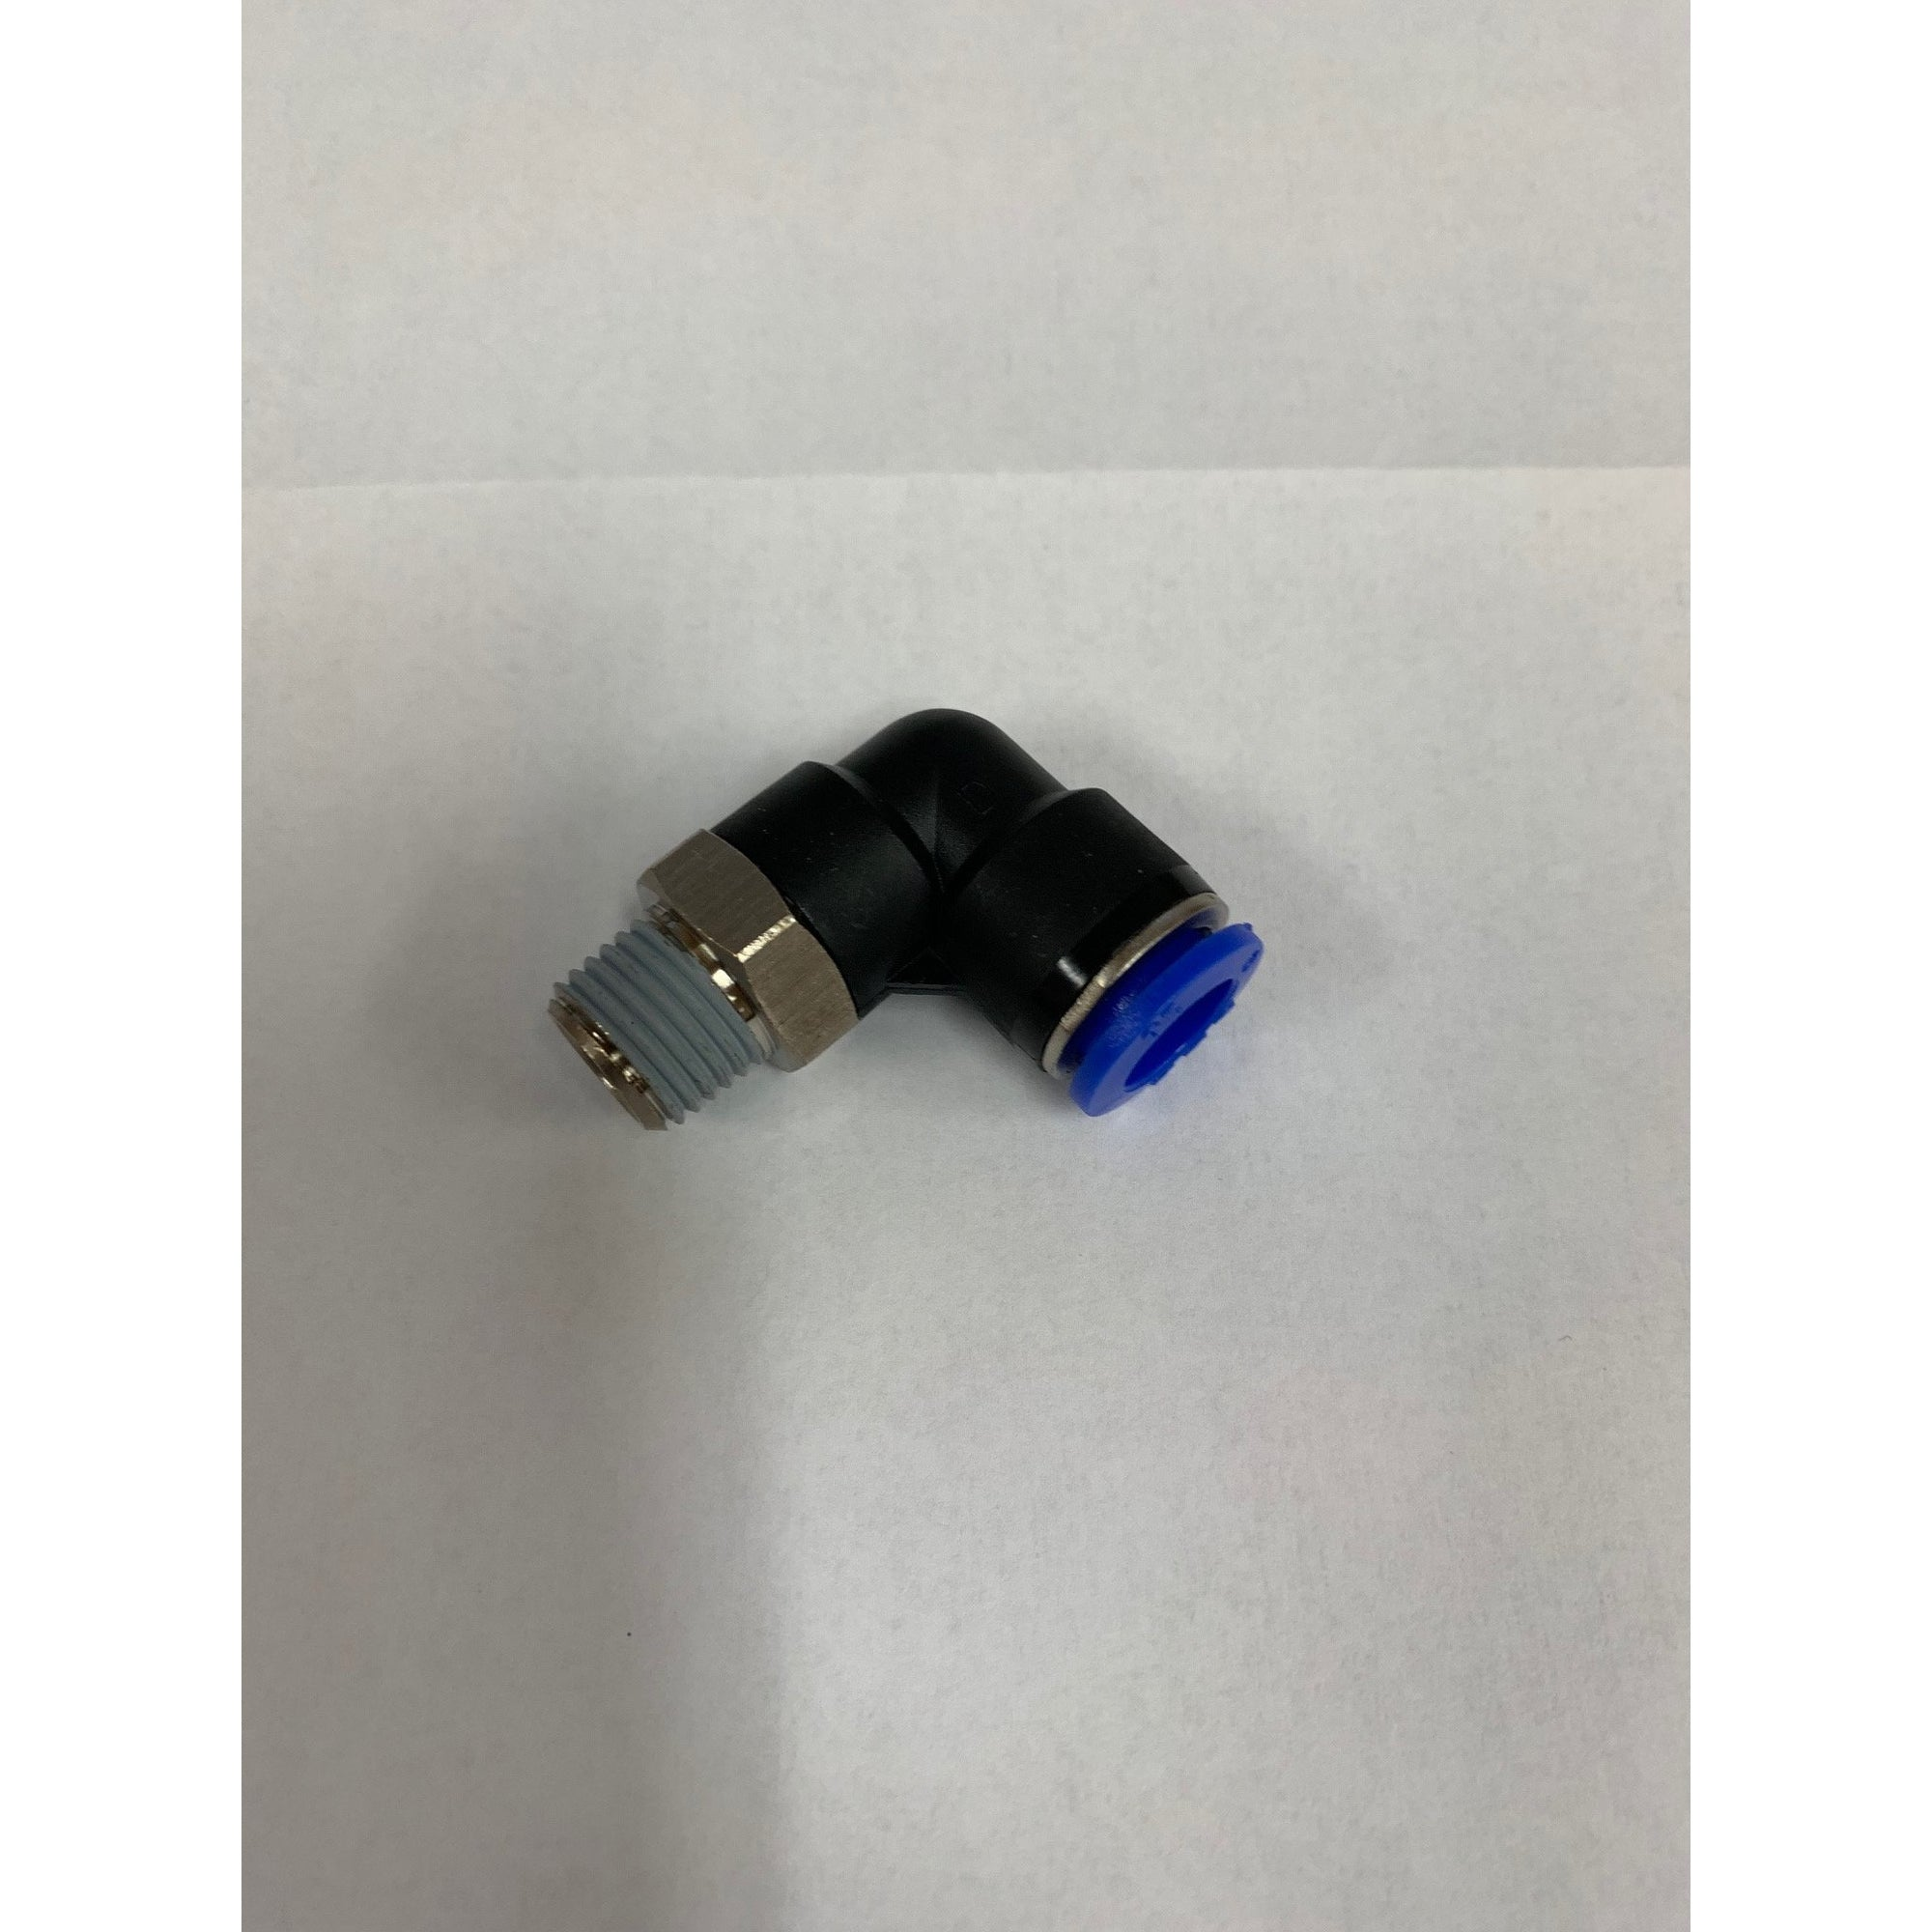 MAHA DYNO AIR BAG HOSE FITTING / Part # 28-9210